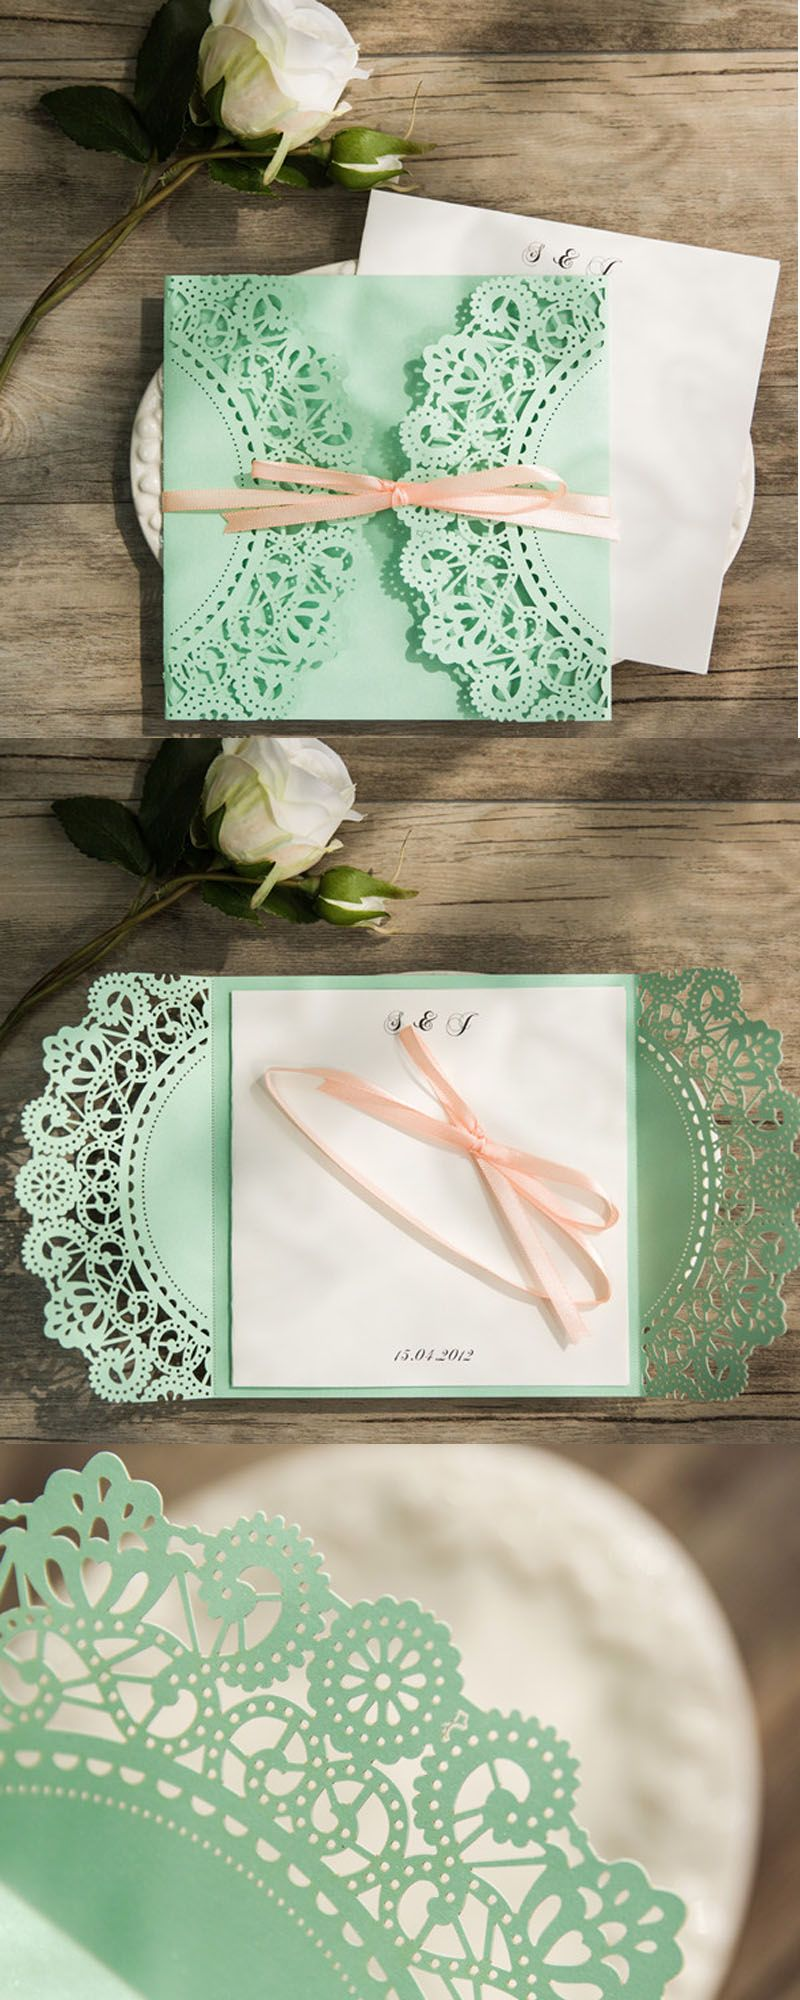 paper cut wedding invitations uk%0A Mint green wedding invitations  Doily laser cut wedding invitations